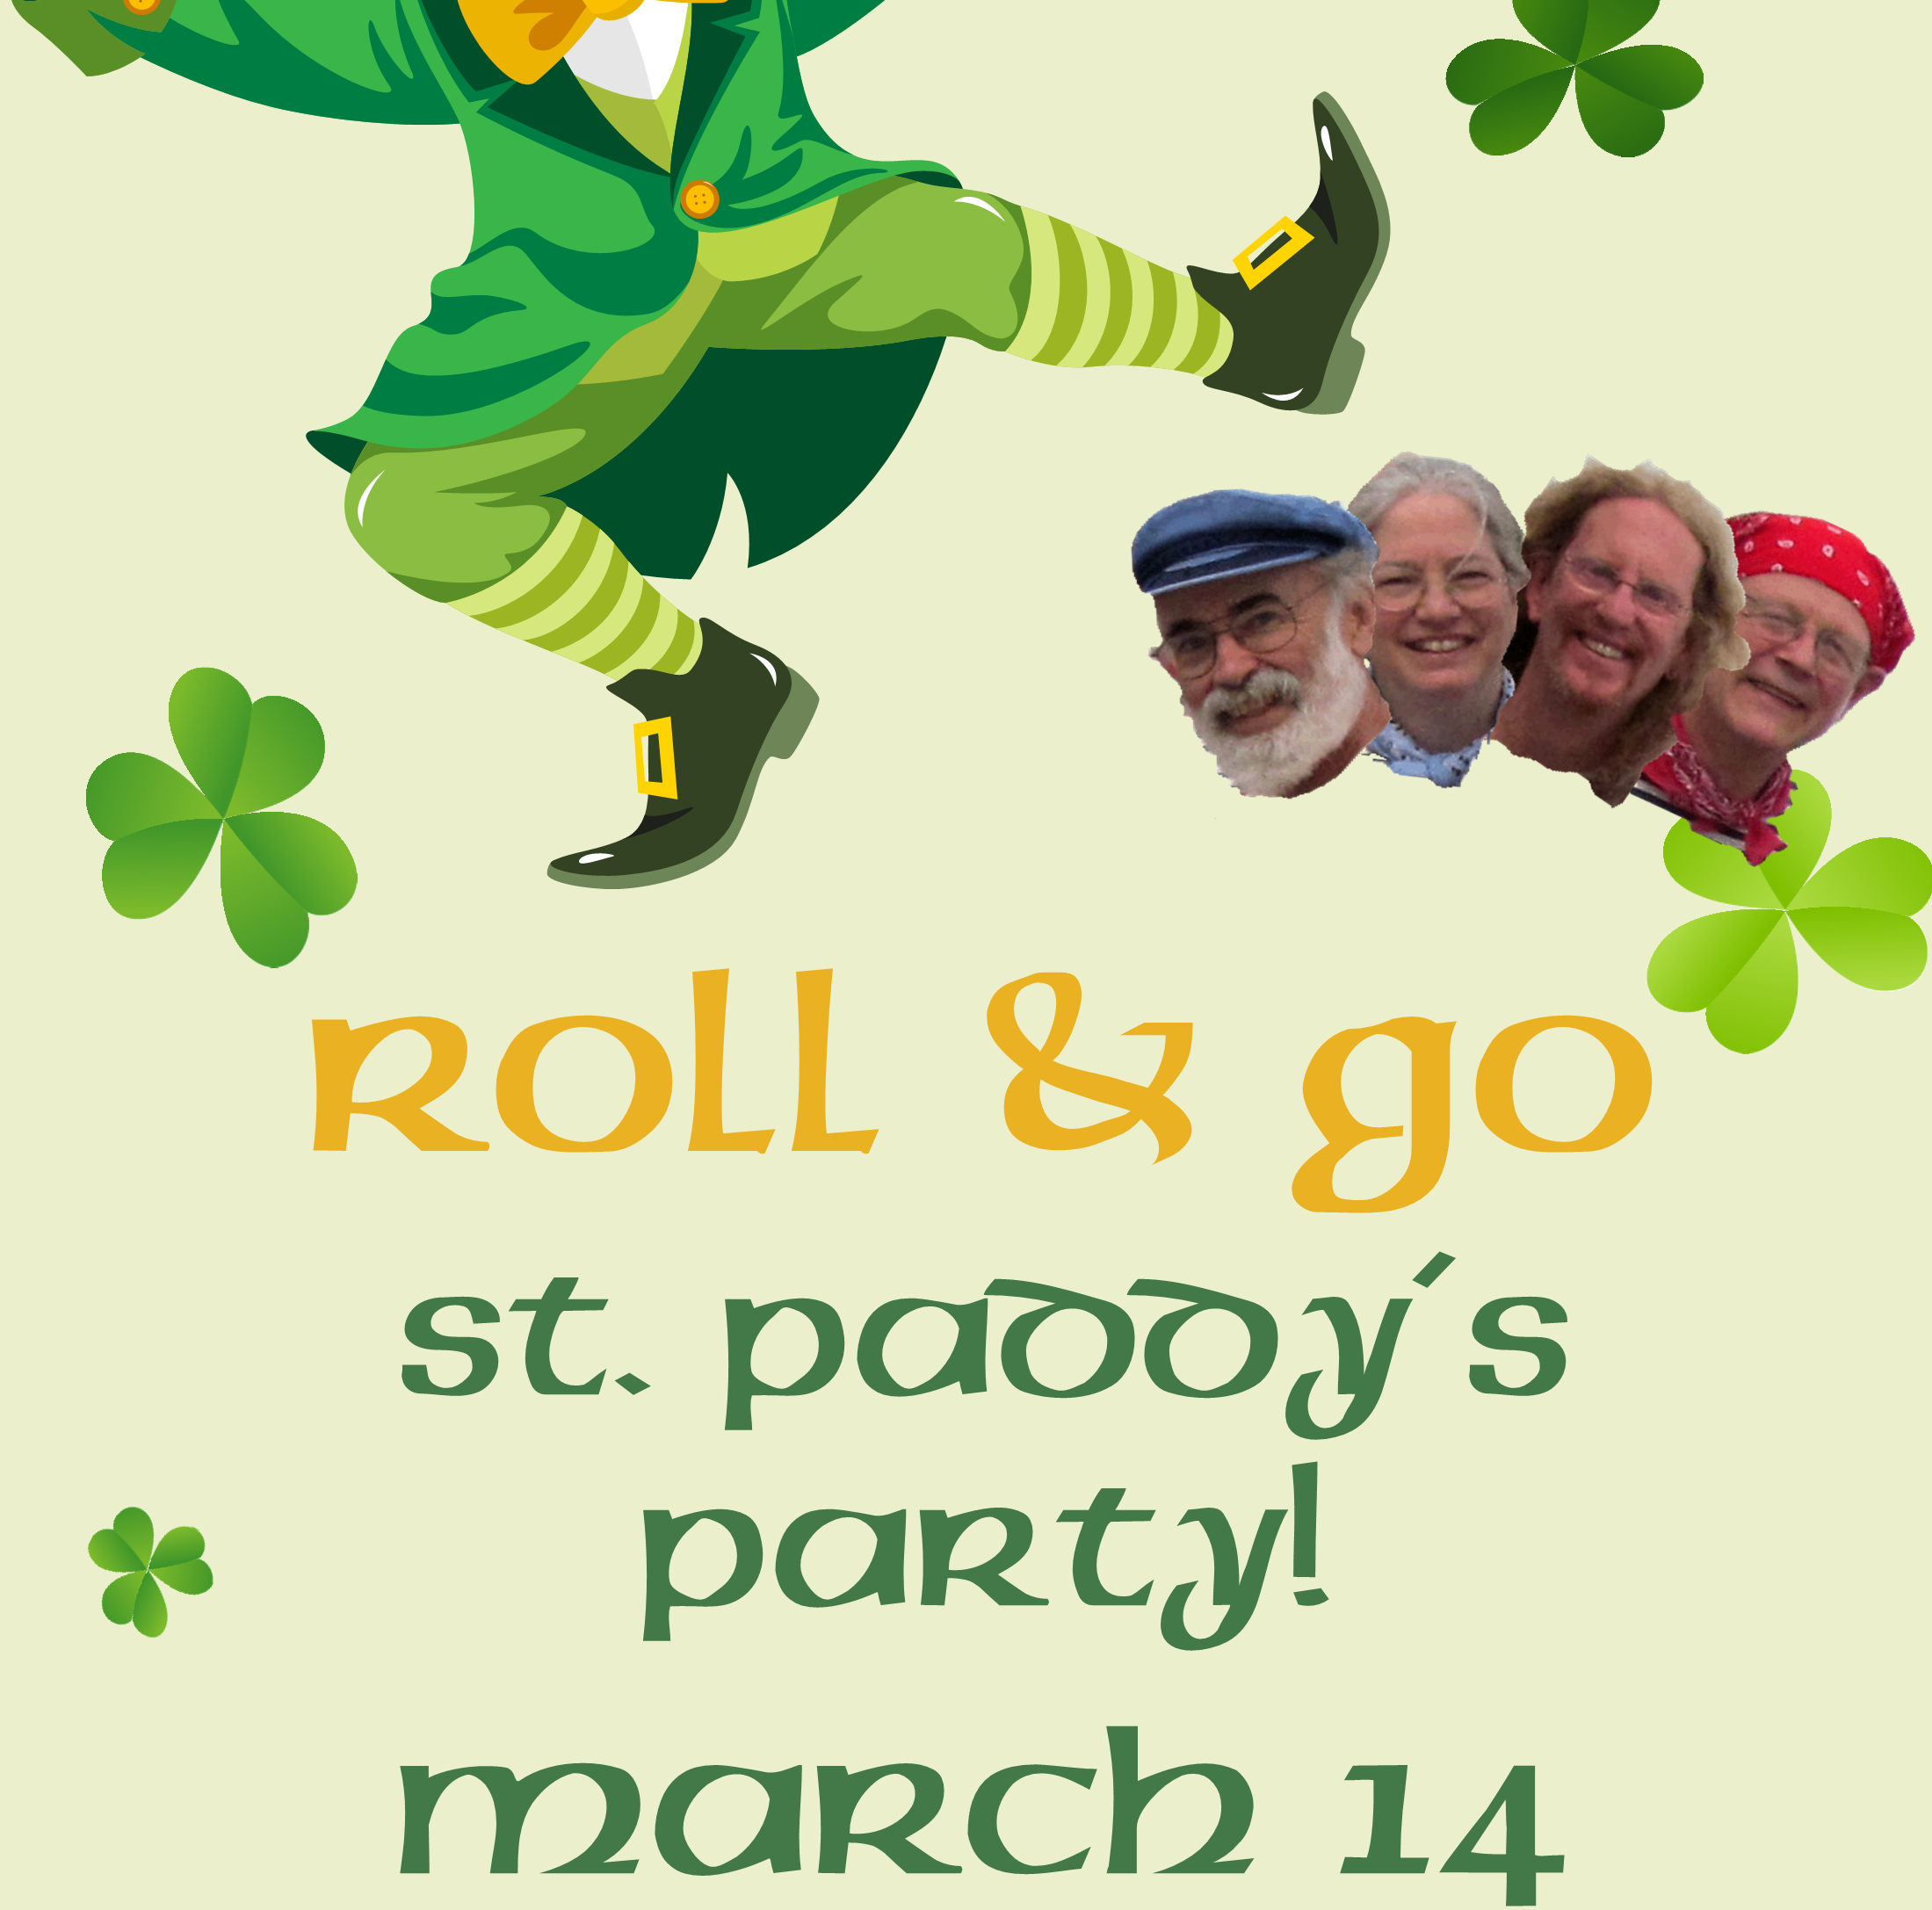 St paddys day image